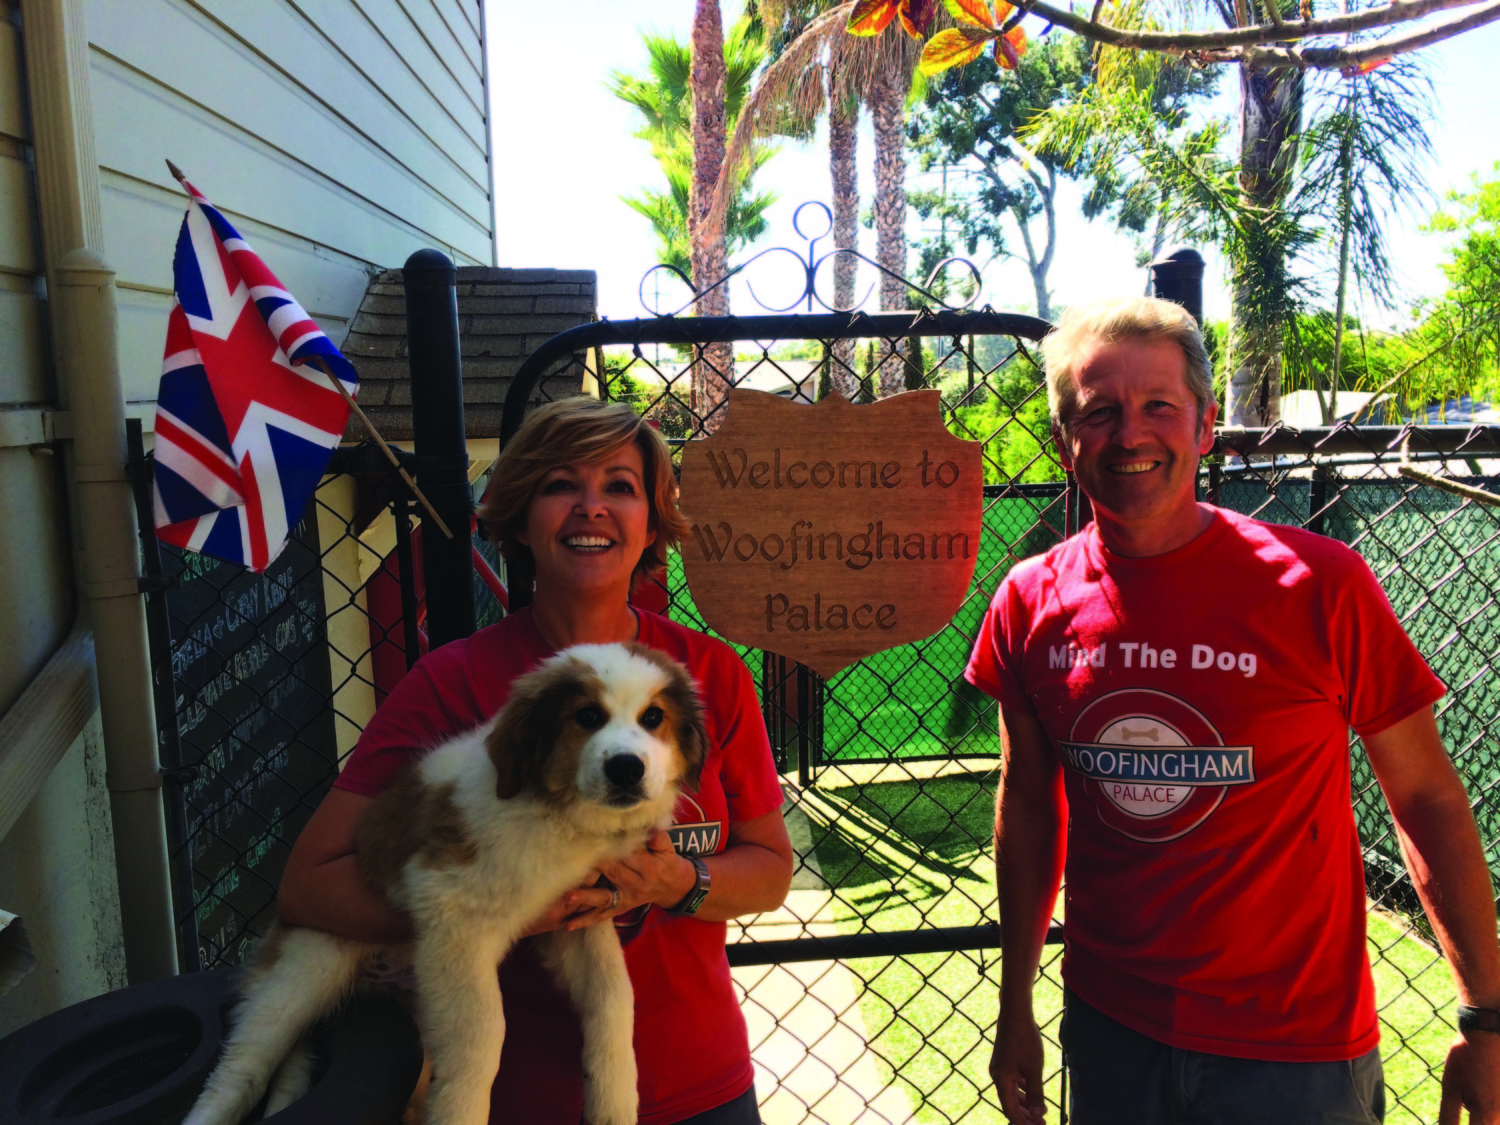 Woofingham Palace, a hit with locals, set to expand